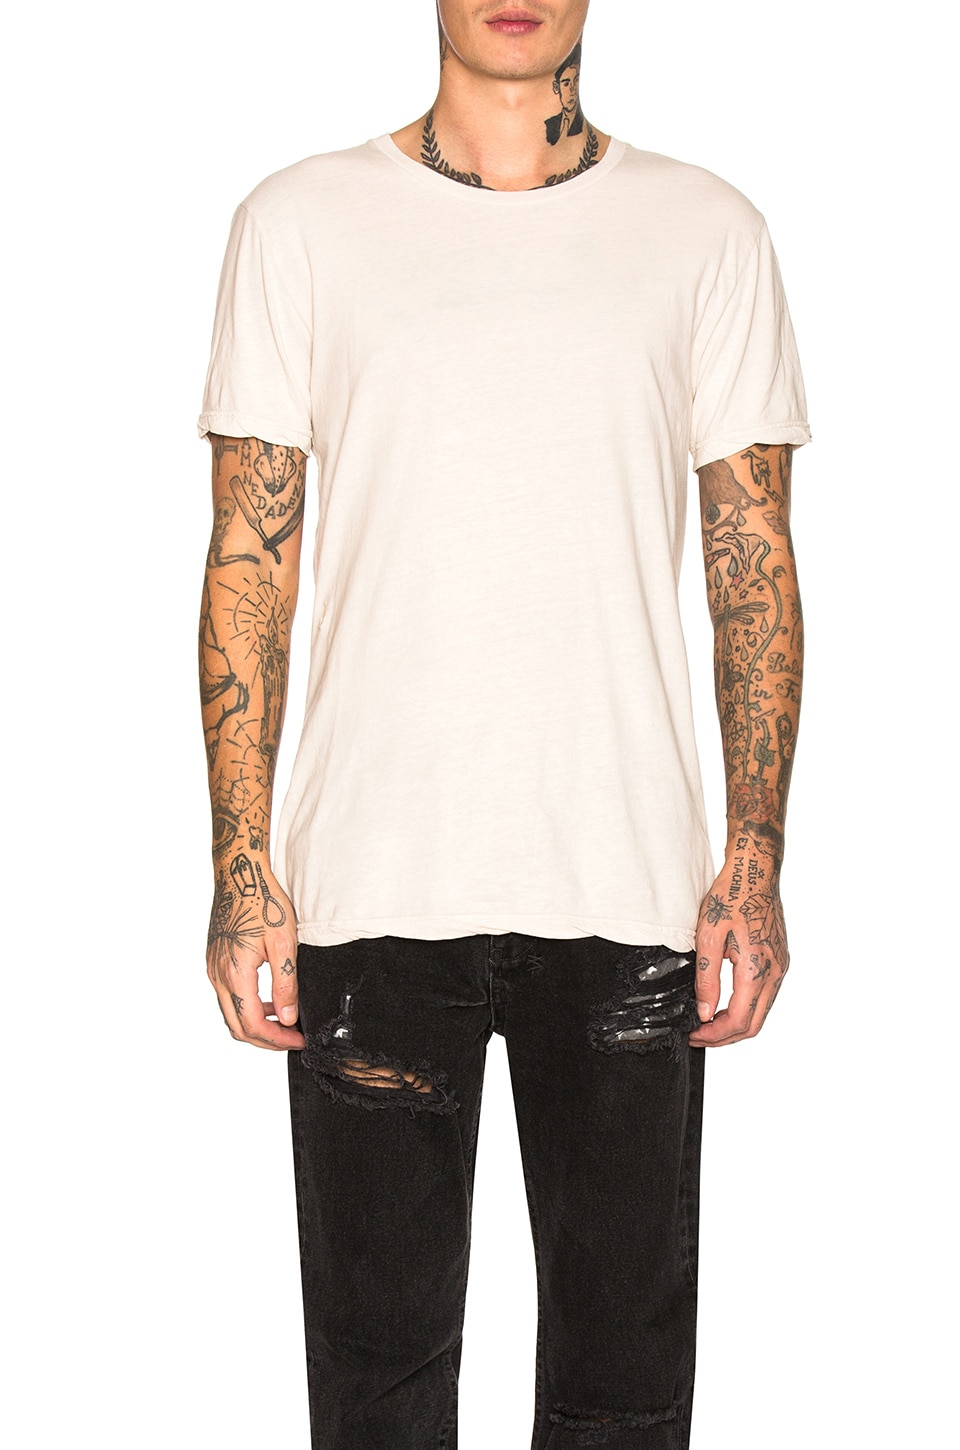 Ksubi Sioux Tee in Putty